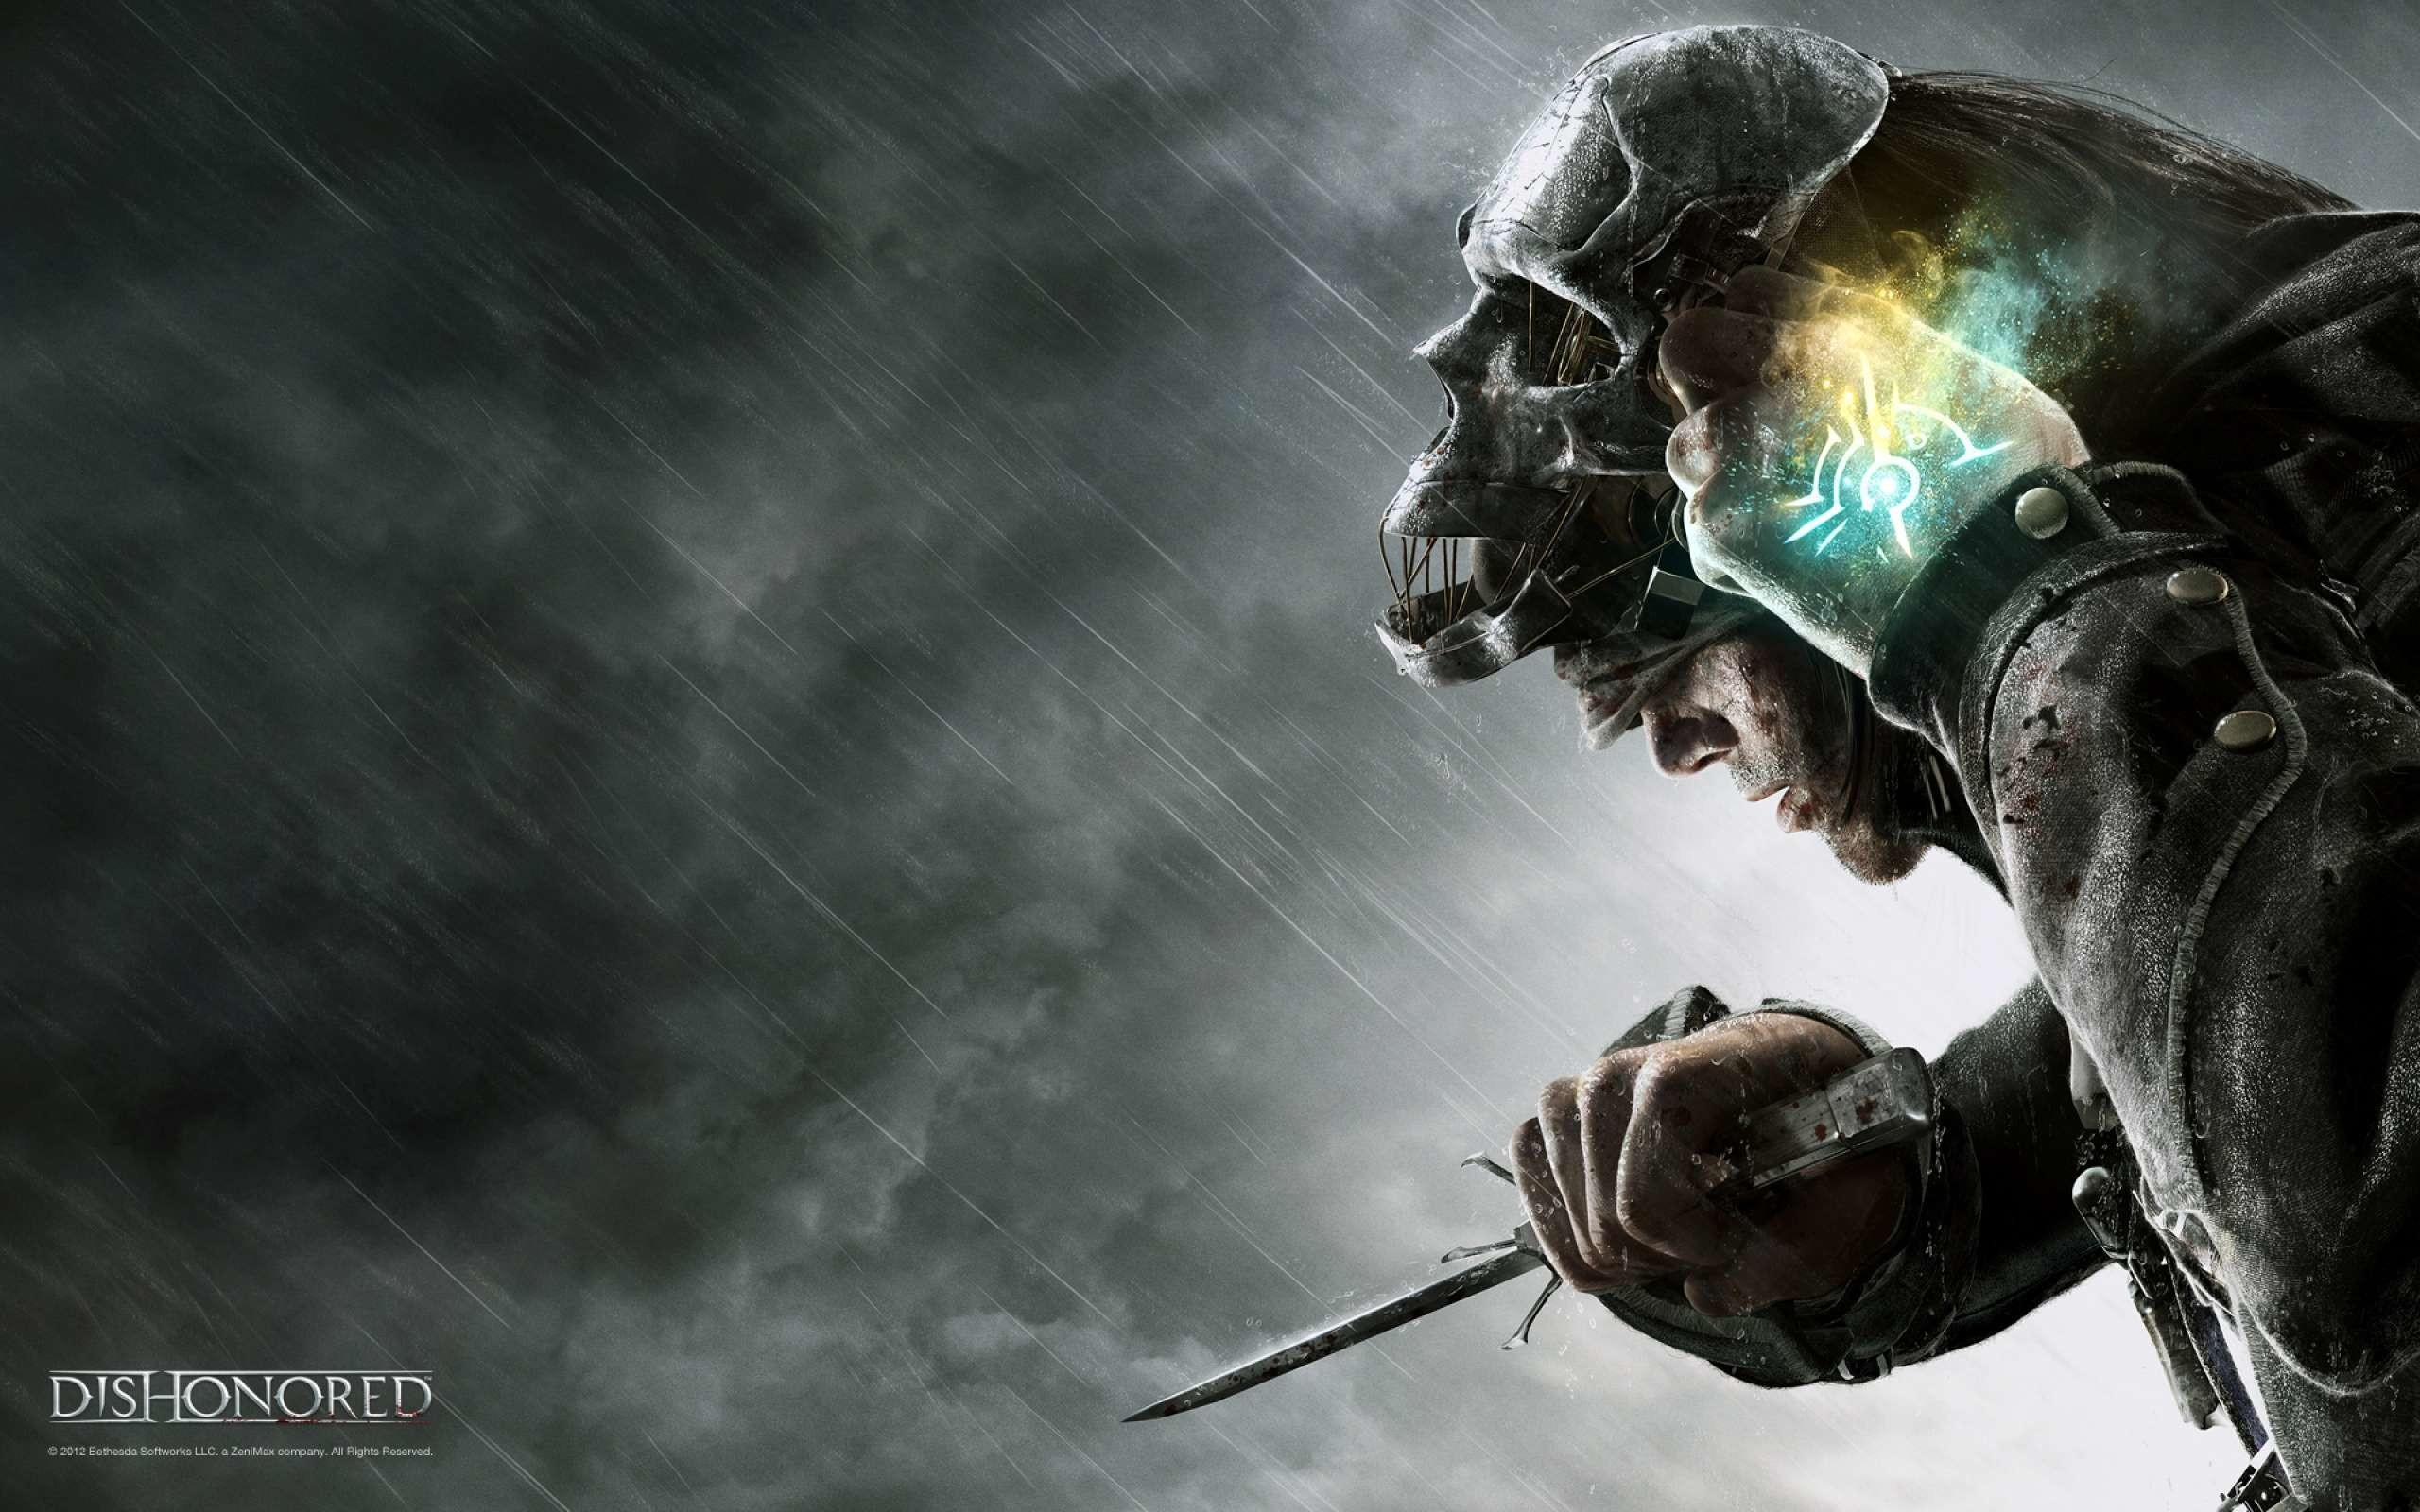 Dishonored-Game-Wallpaper-HD-Widescreen